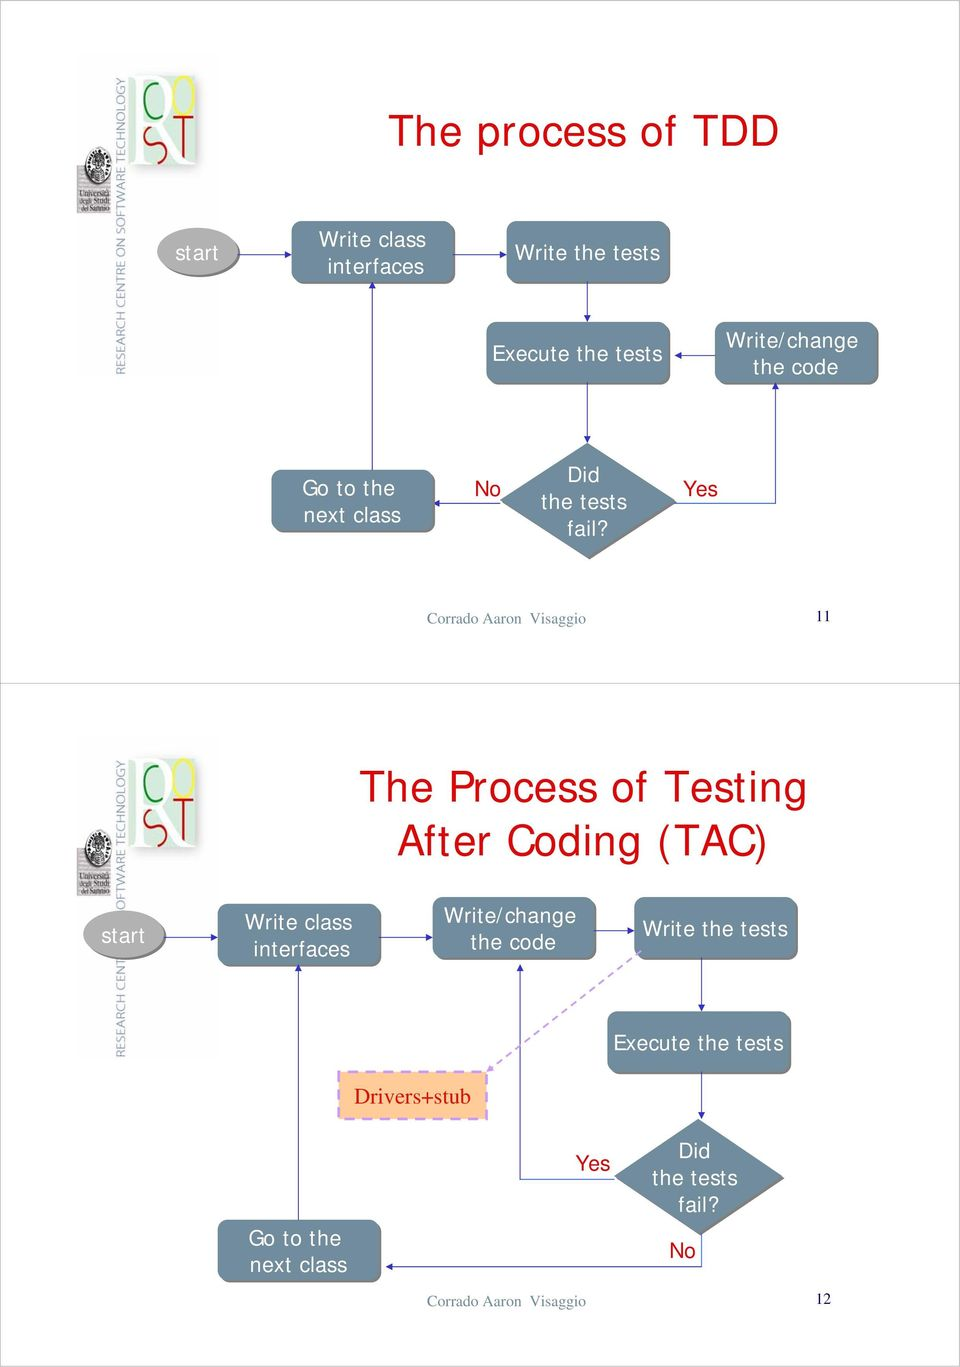 Yes Corrado Aaron Visaggio 11 The Process of Testing After Coding (TAC) start Write class